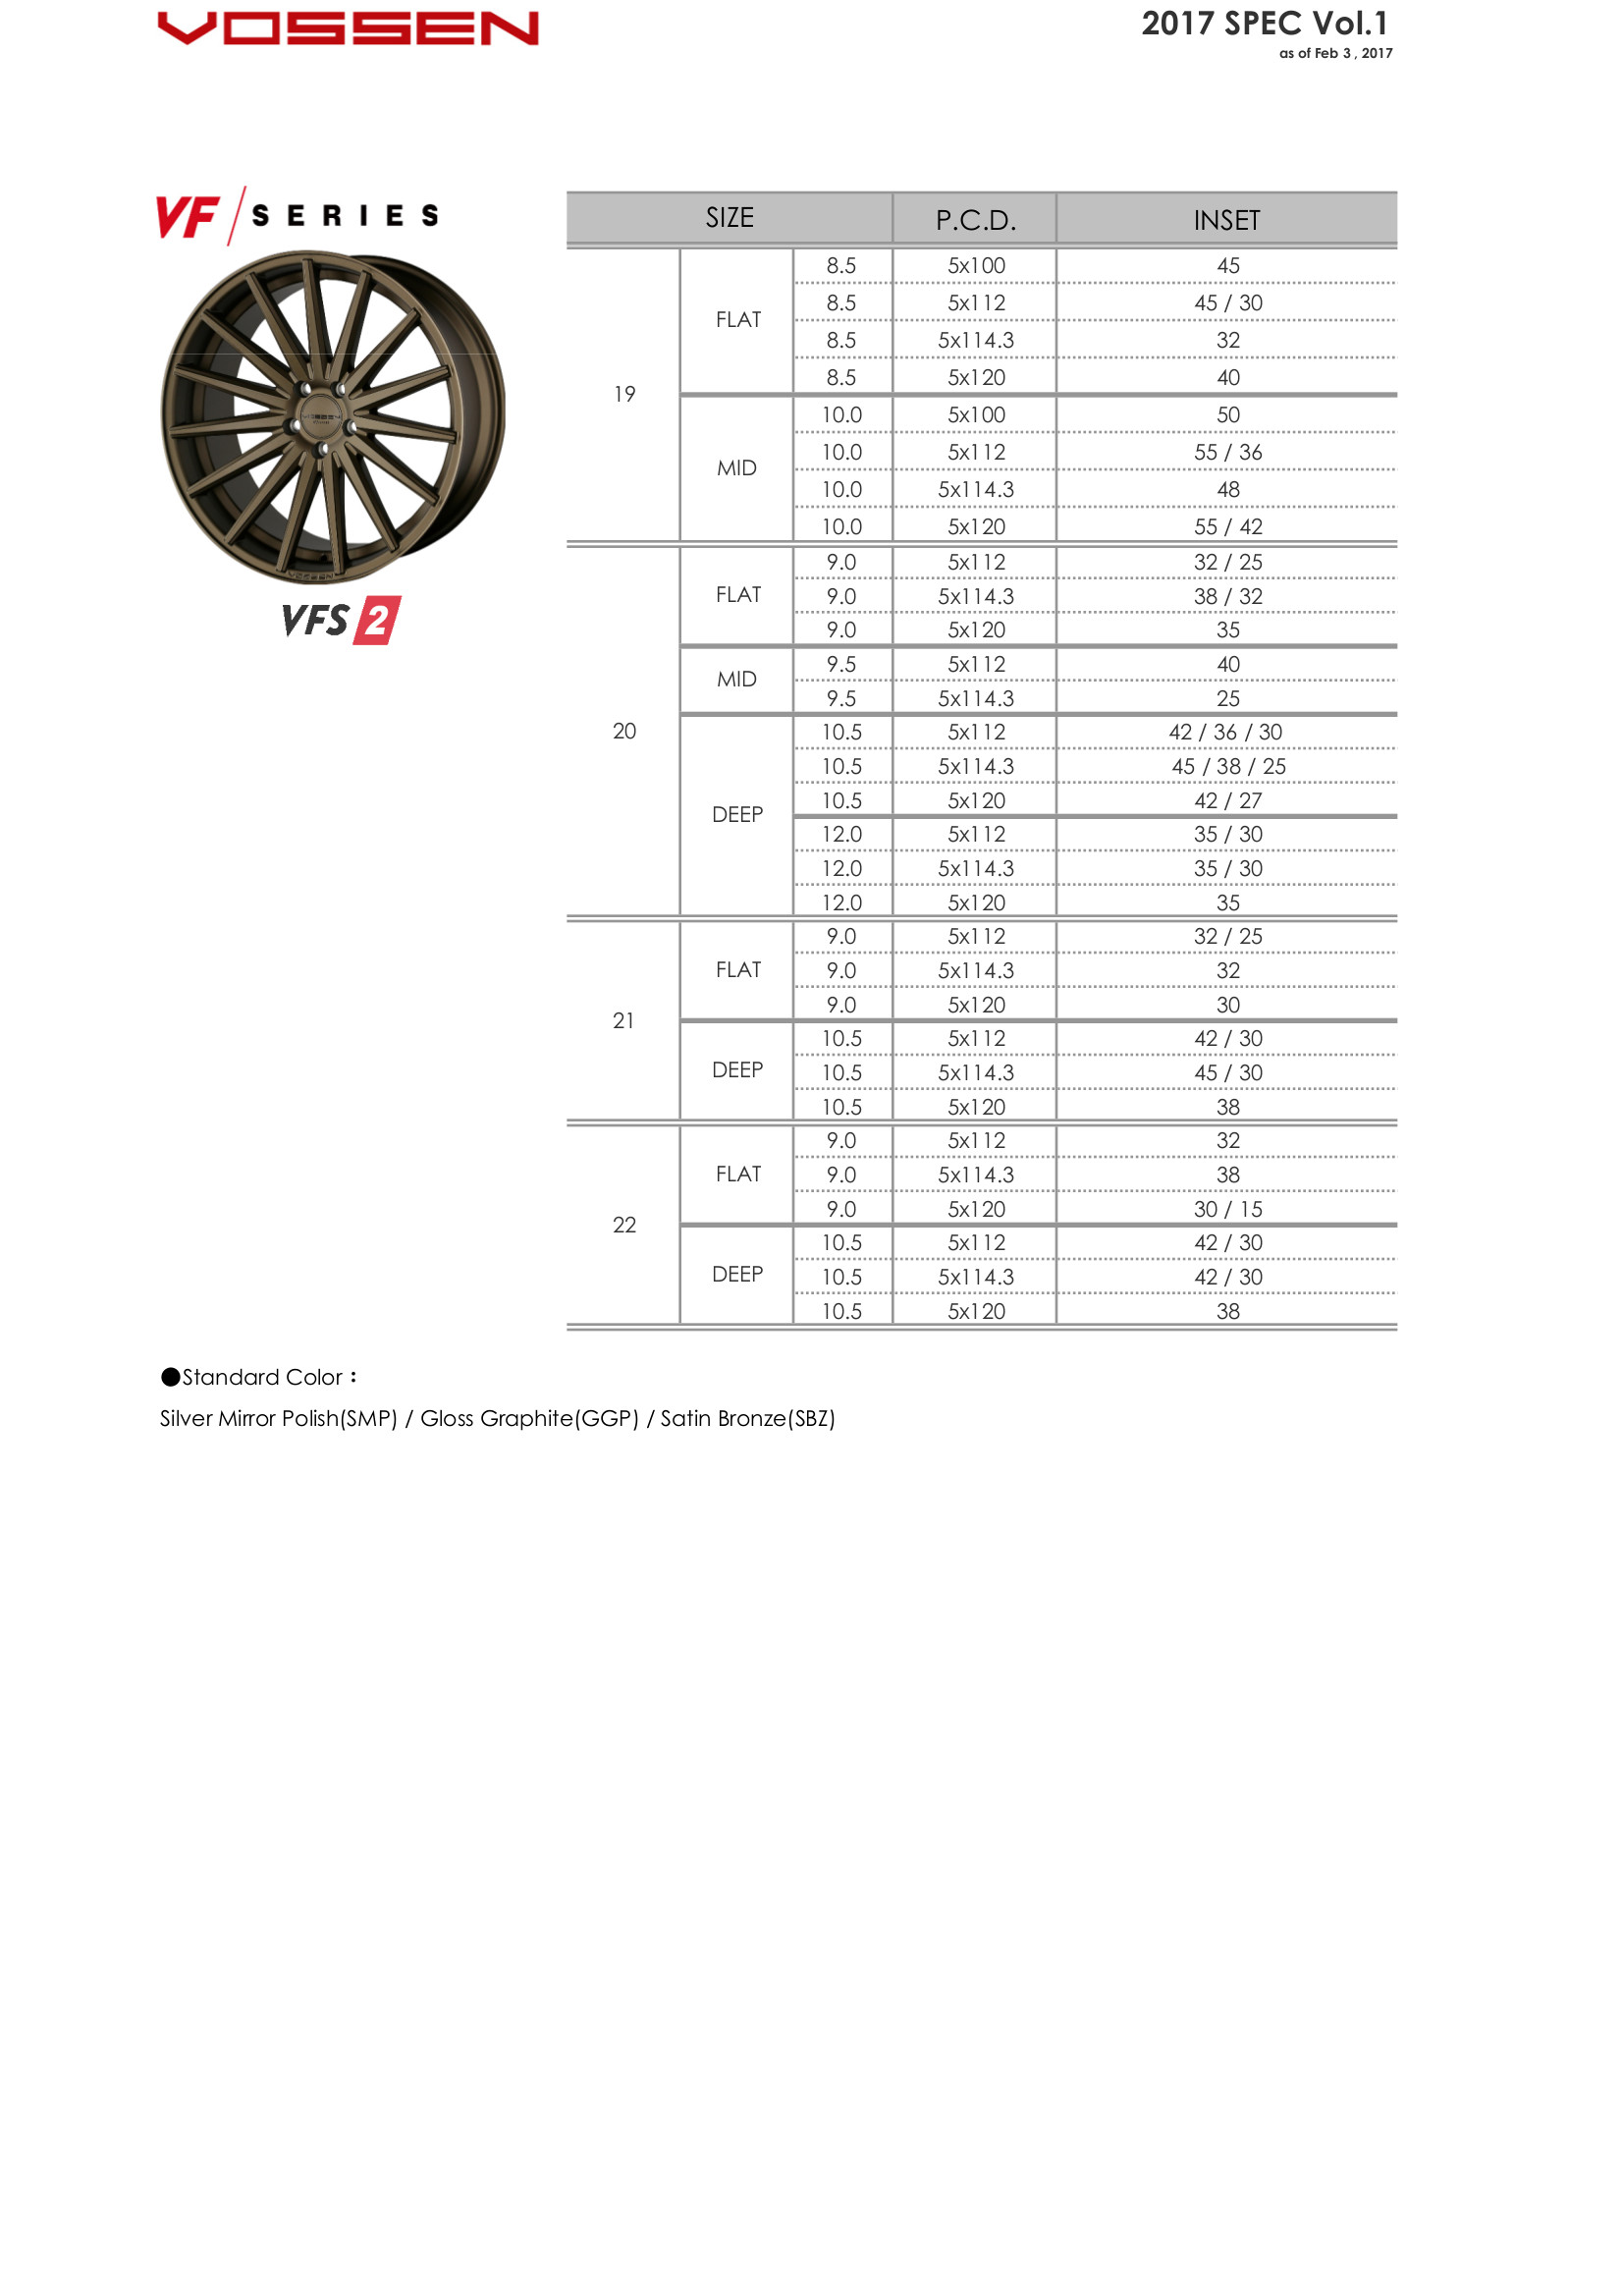 Vossen Specification